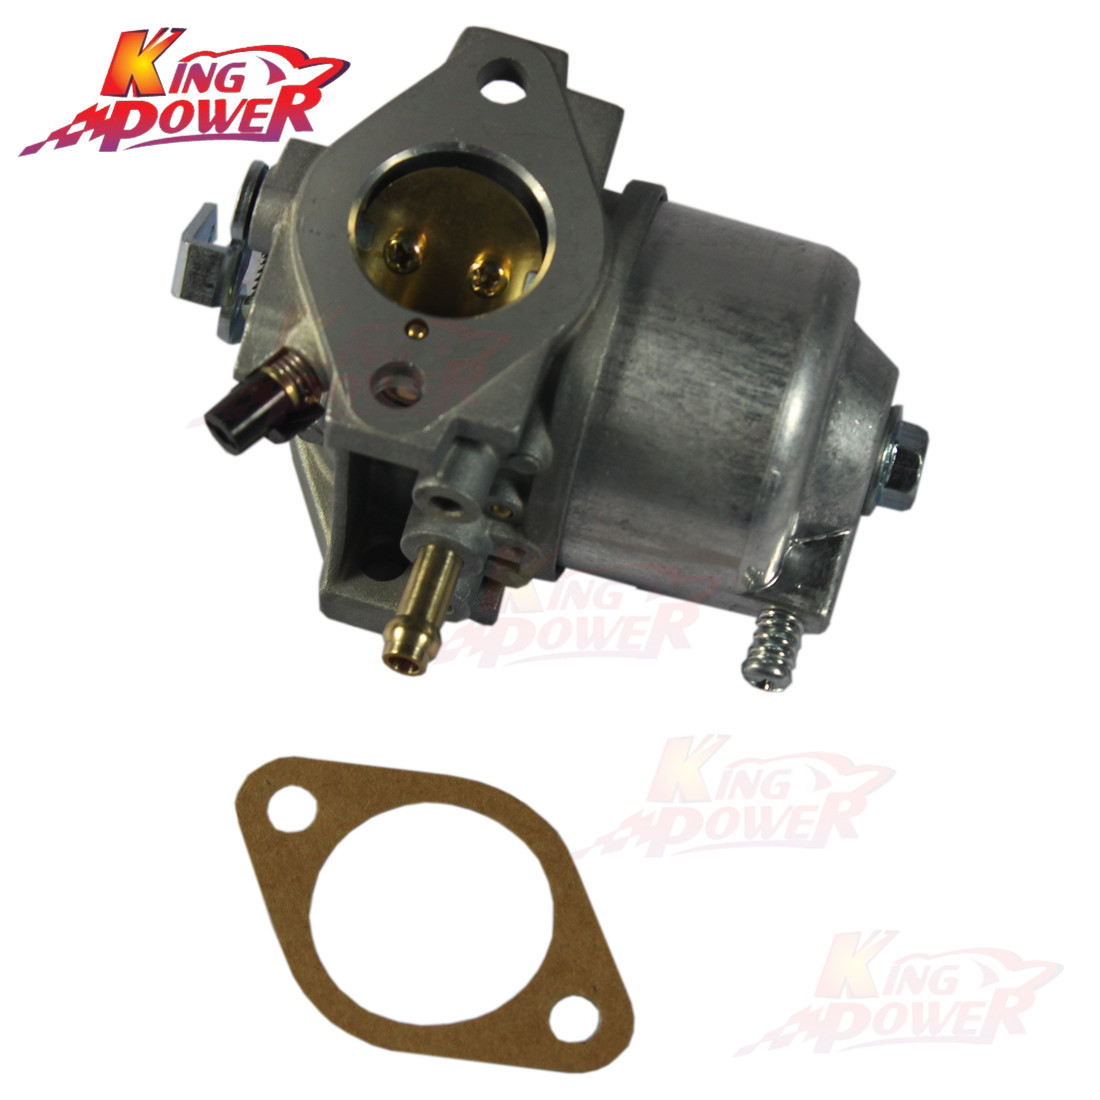 John Deere Gx345 Carburetor 345 Kawasaki Wiring Diagrams Kp Free Shipping Carb Gasket For 1100x1100